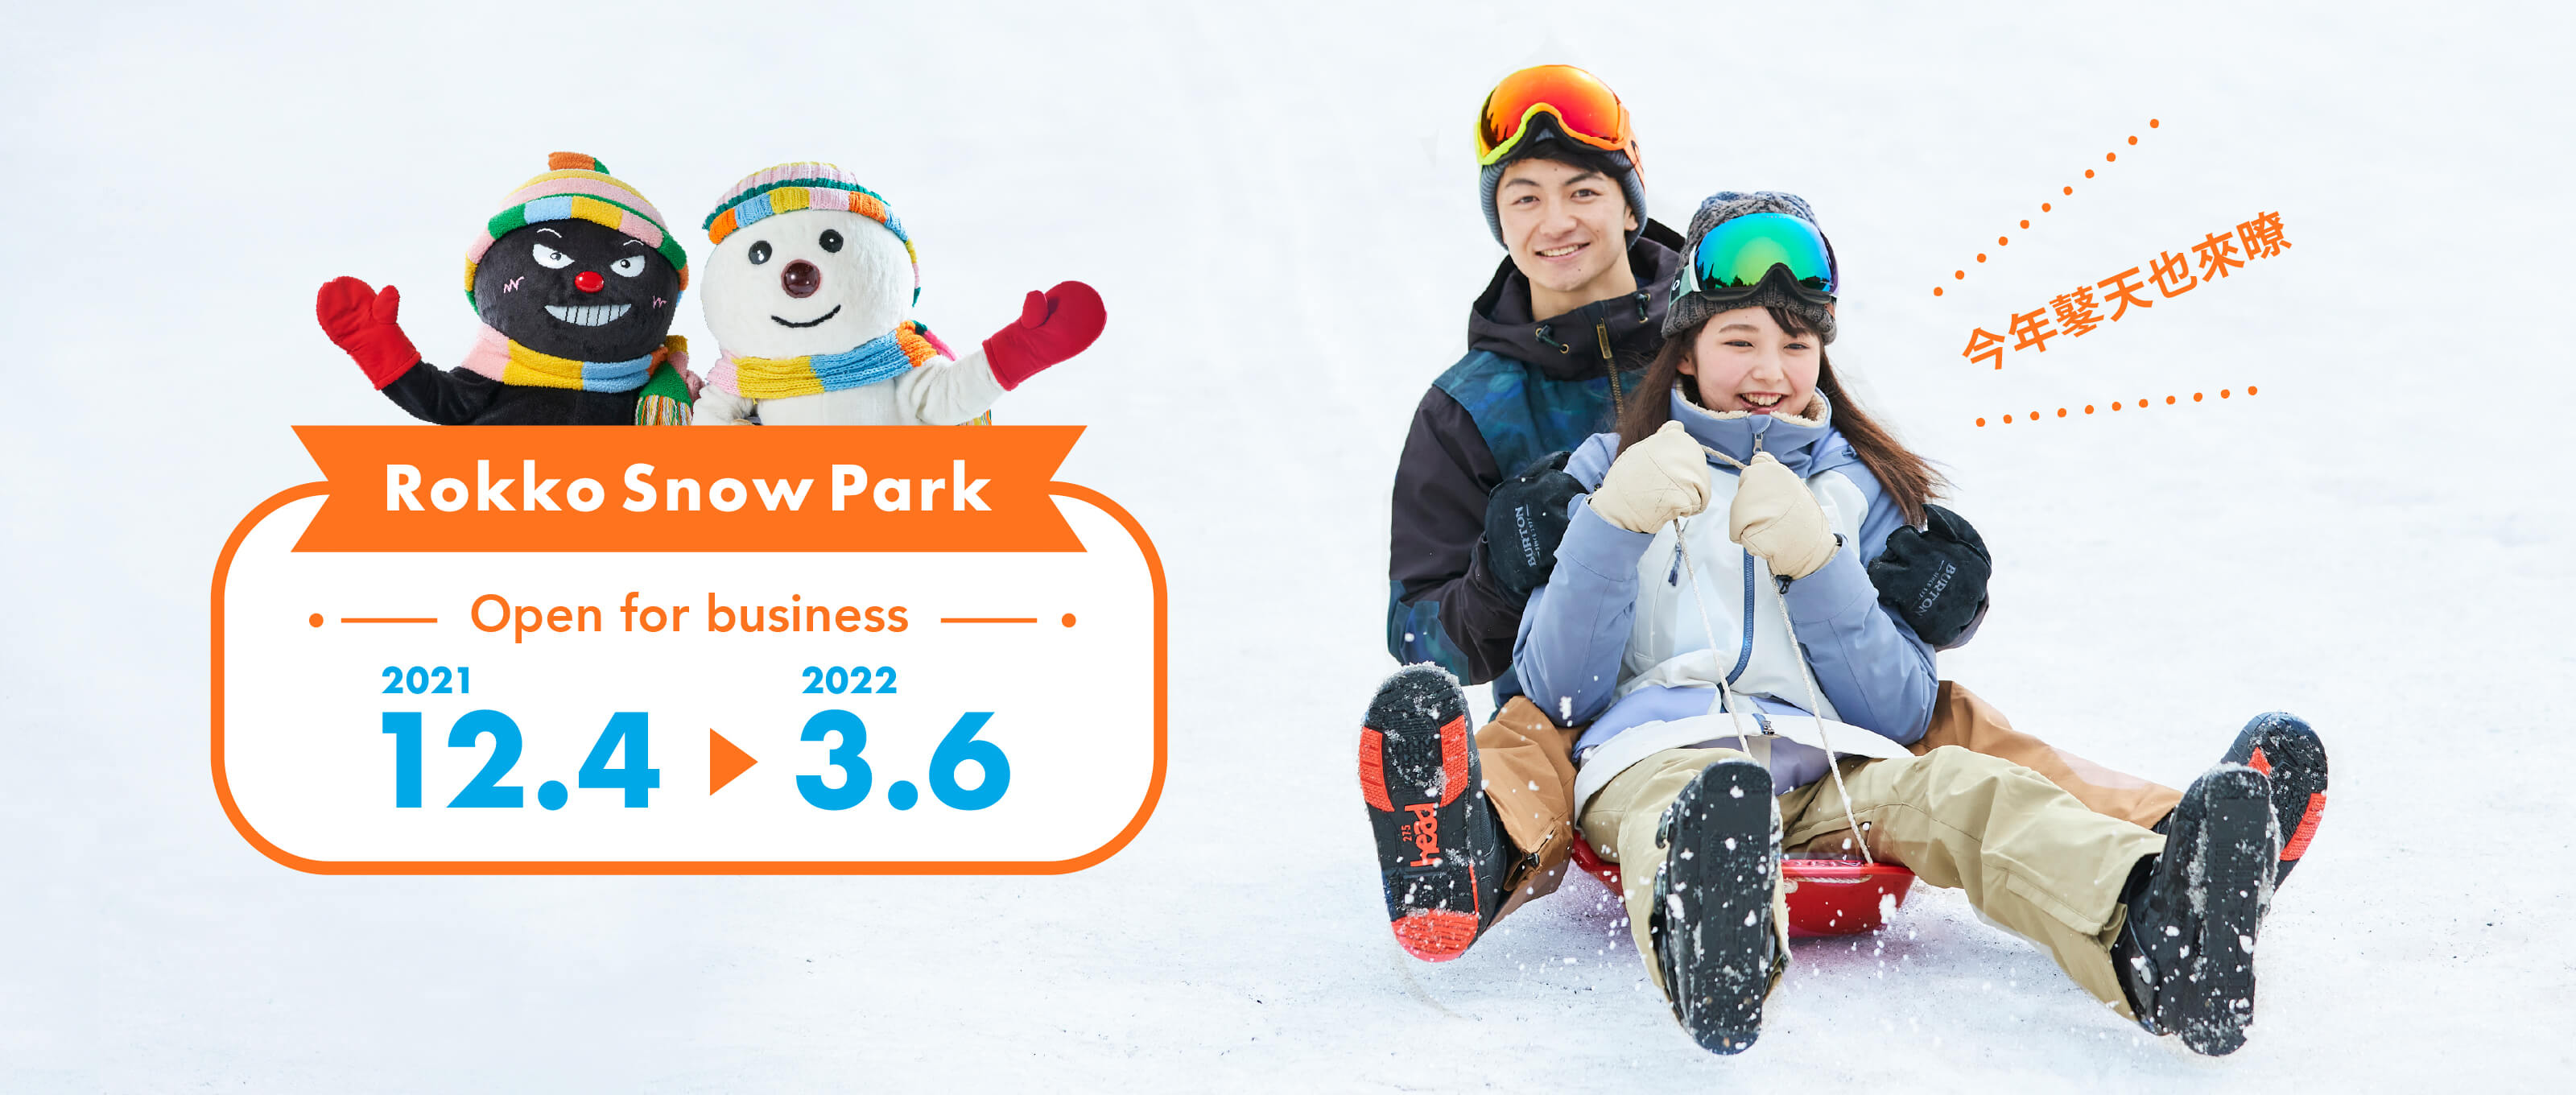 Snow park main image:轻松出游真好!Open for business 2018.11.17 - 2019.3.31